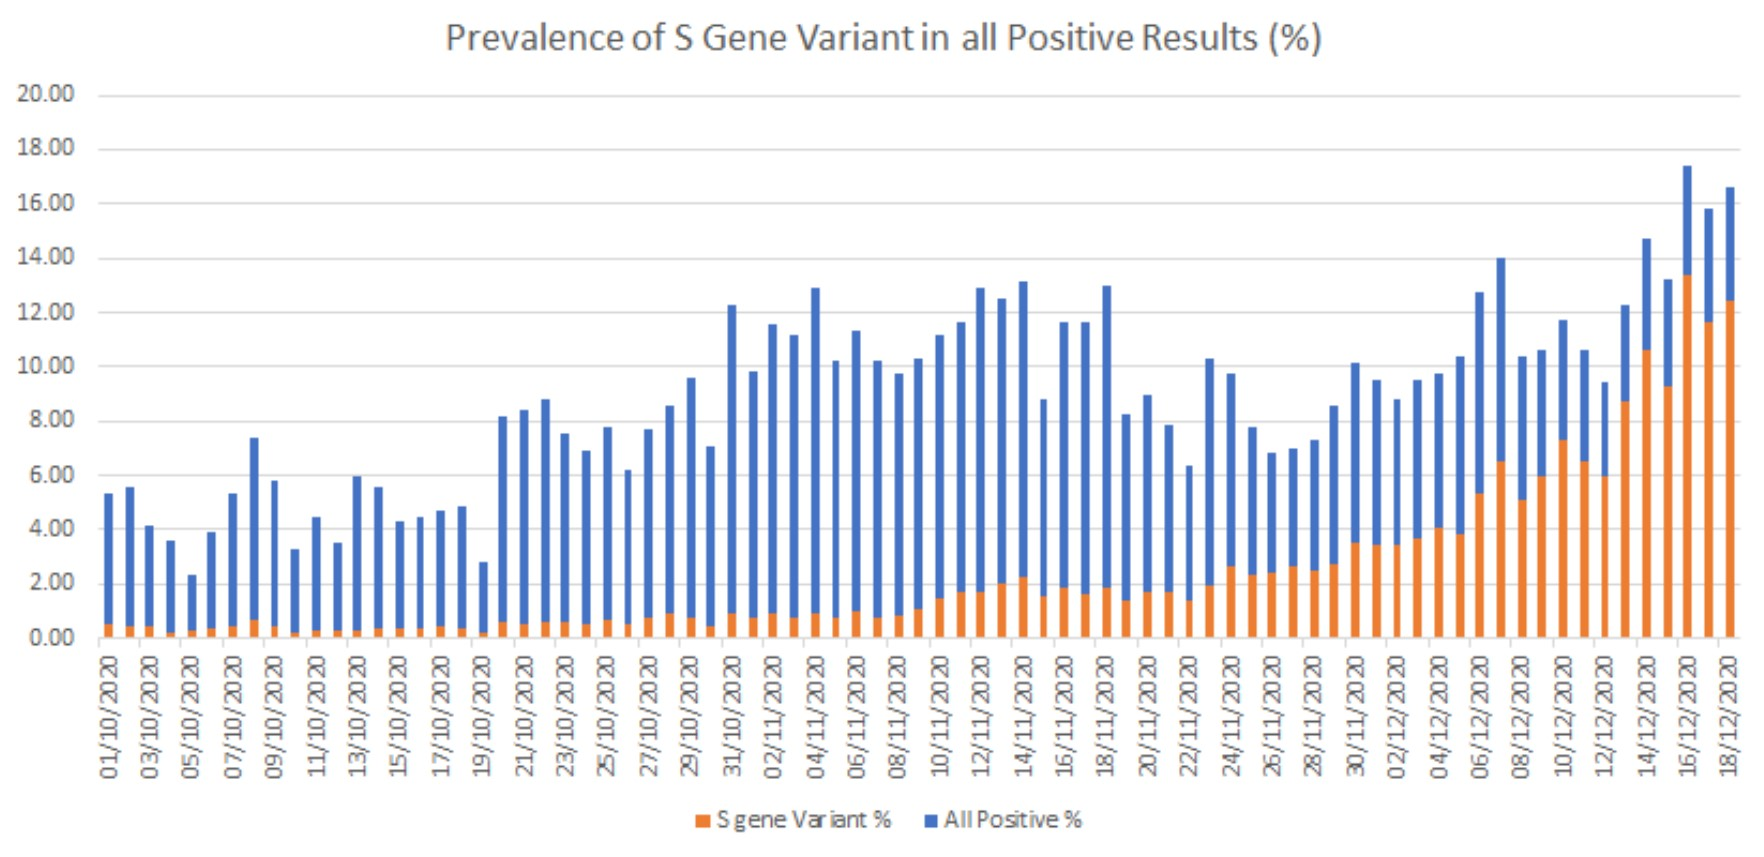 Presence of S Gene Variant in all positive results - UK Statistics